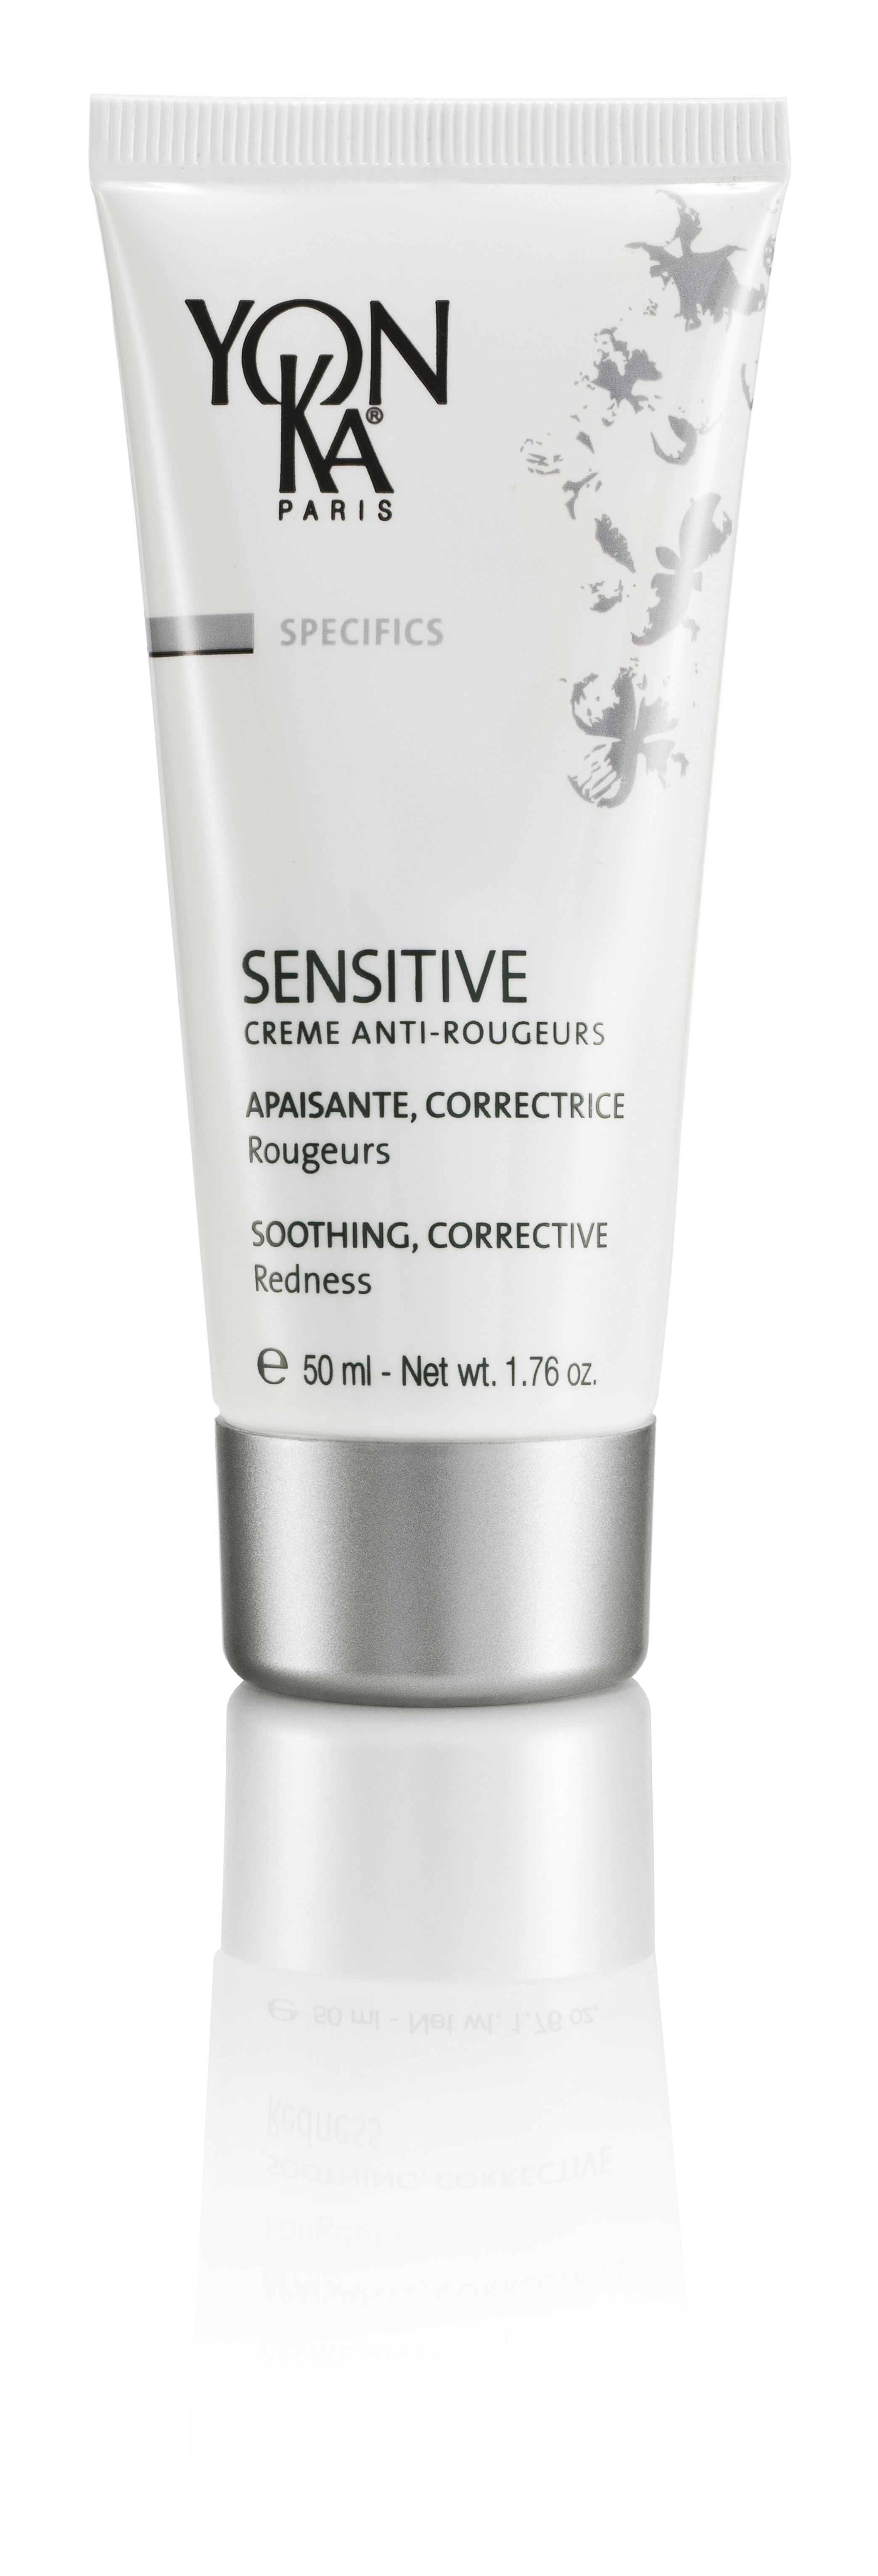 Sensitive Creme Anti-Rougeurs (50ml)